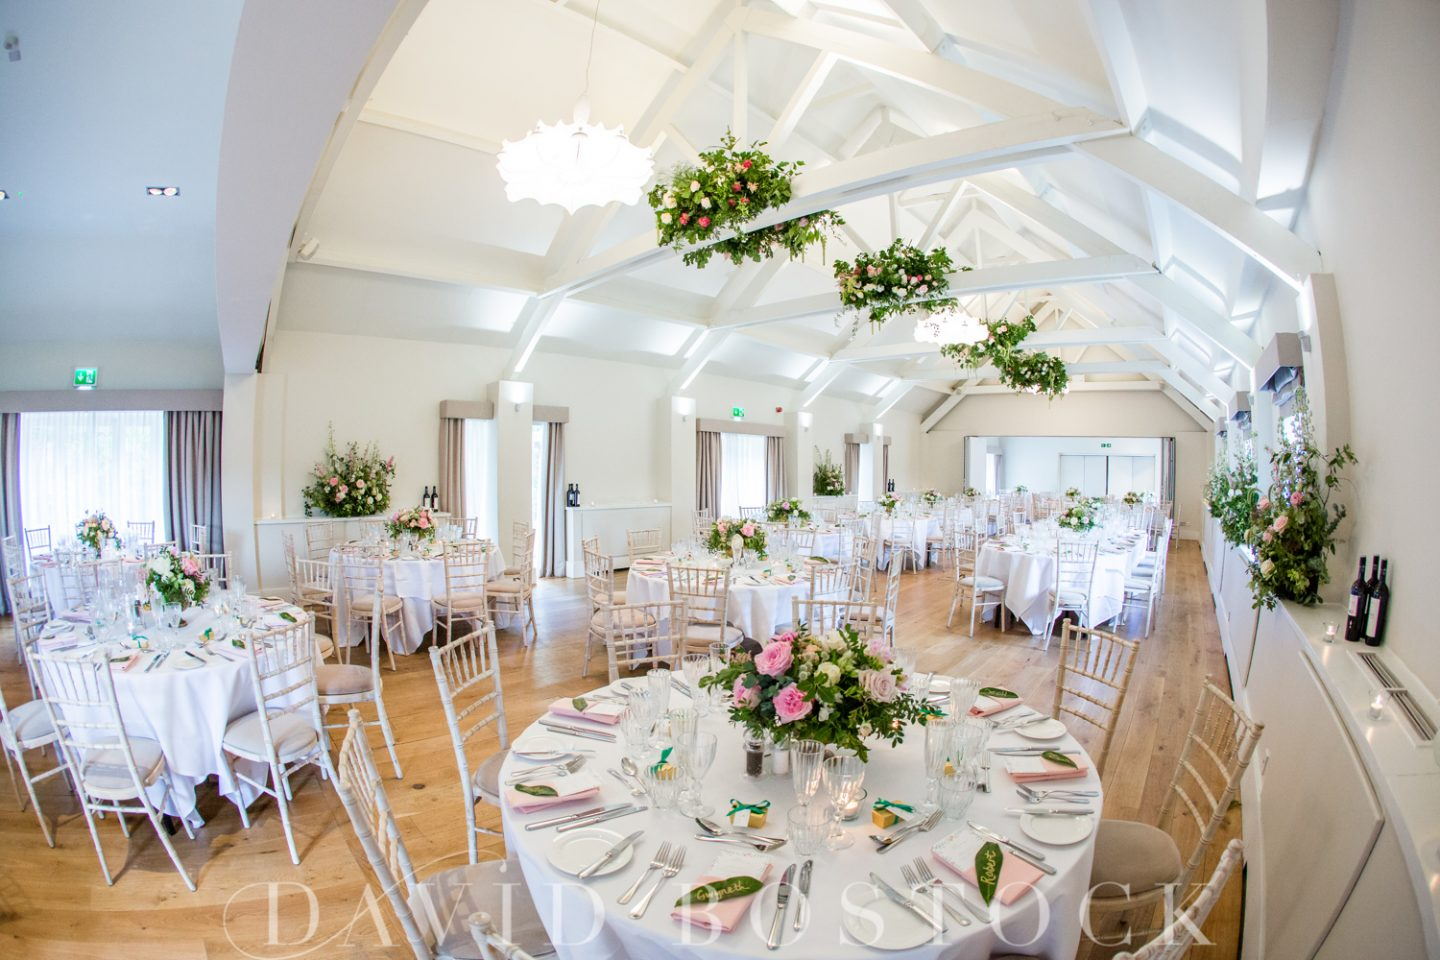 Table Plan Tips, wedding table plan advice, London Wedding Planner, Walthamstow Wedding Planner, On the Day Coordinator, Dry Hire Wedding, Round Tables, Stoke Place Hotel, Eton College Weddding